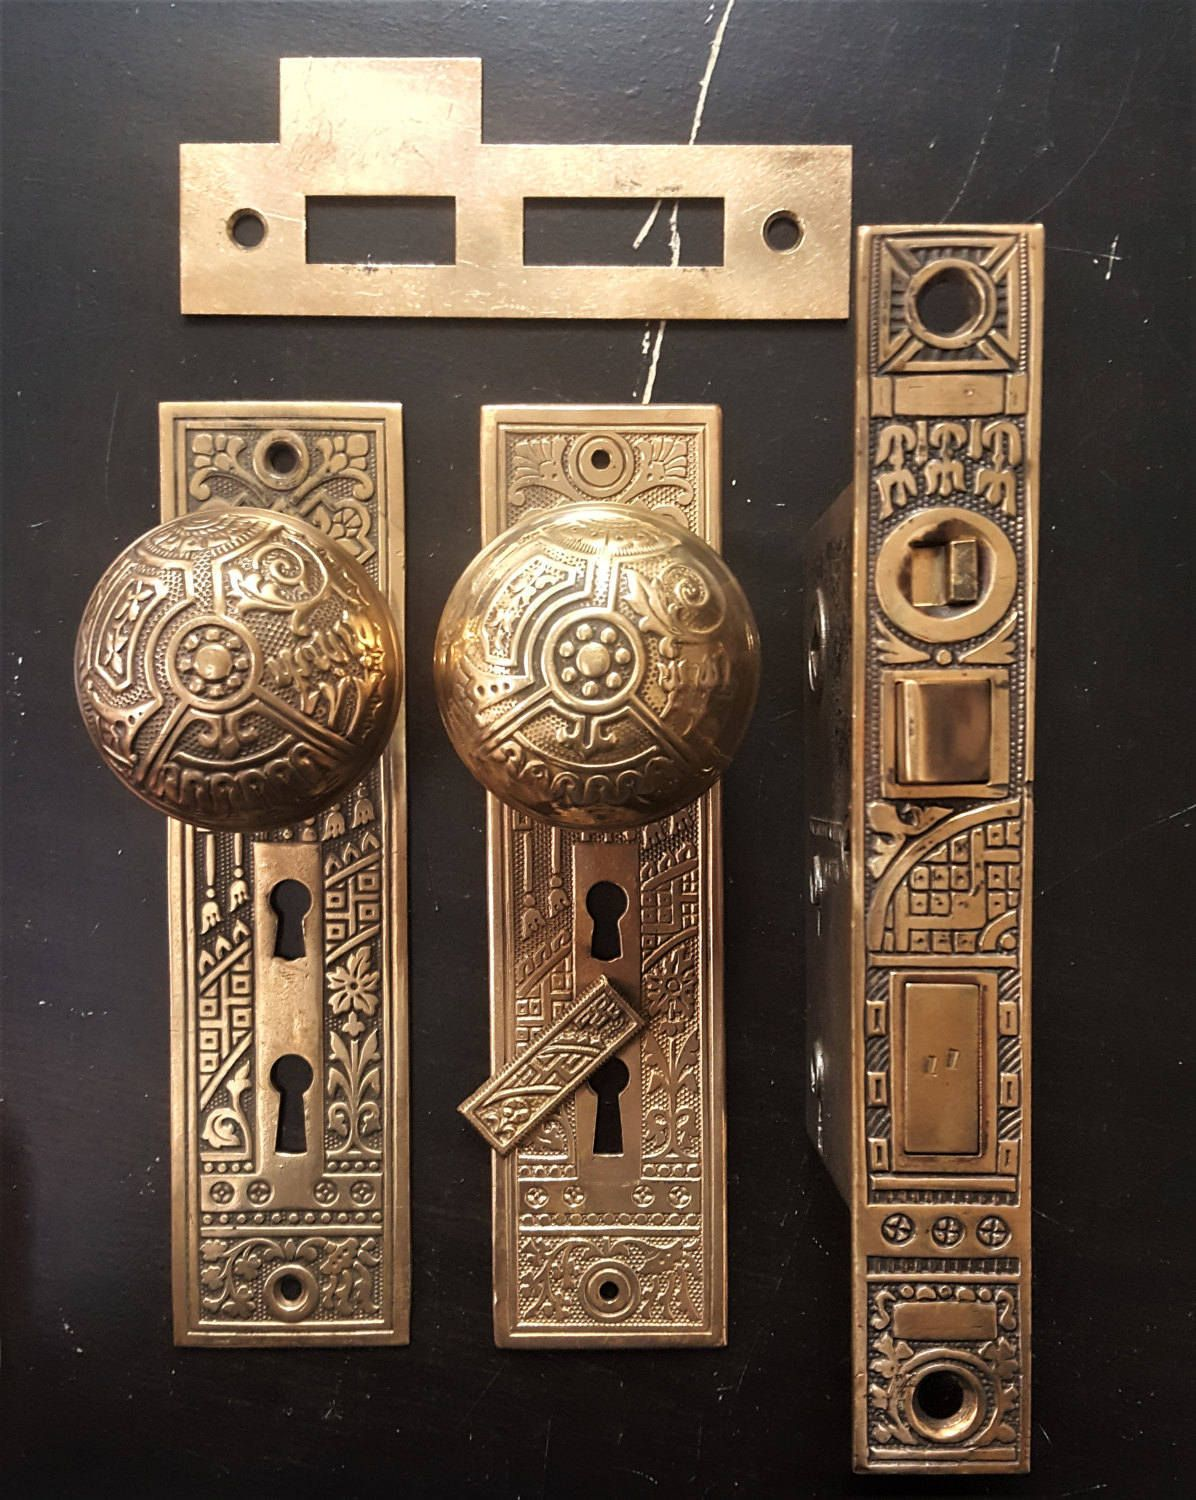 1895 P&F Corbin Ceylon Pattern Antique Entry Door Set With Working Mortise  Lock by CharlestonHardwareCo on Etsy - 1895 P&F Corbin Ceylon Pattern Antique Entry Door Set With Working